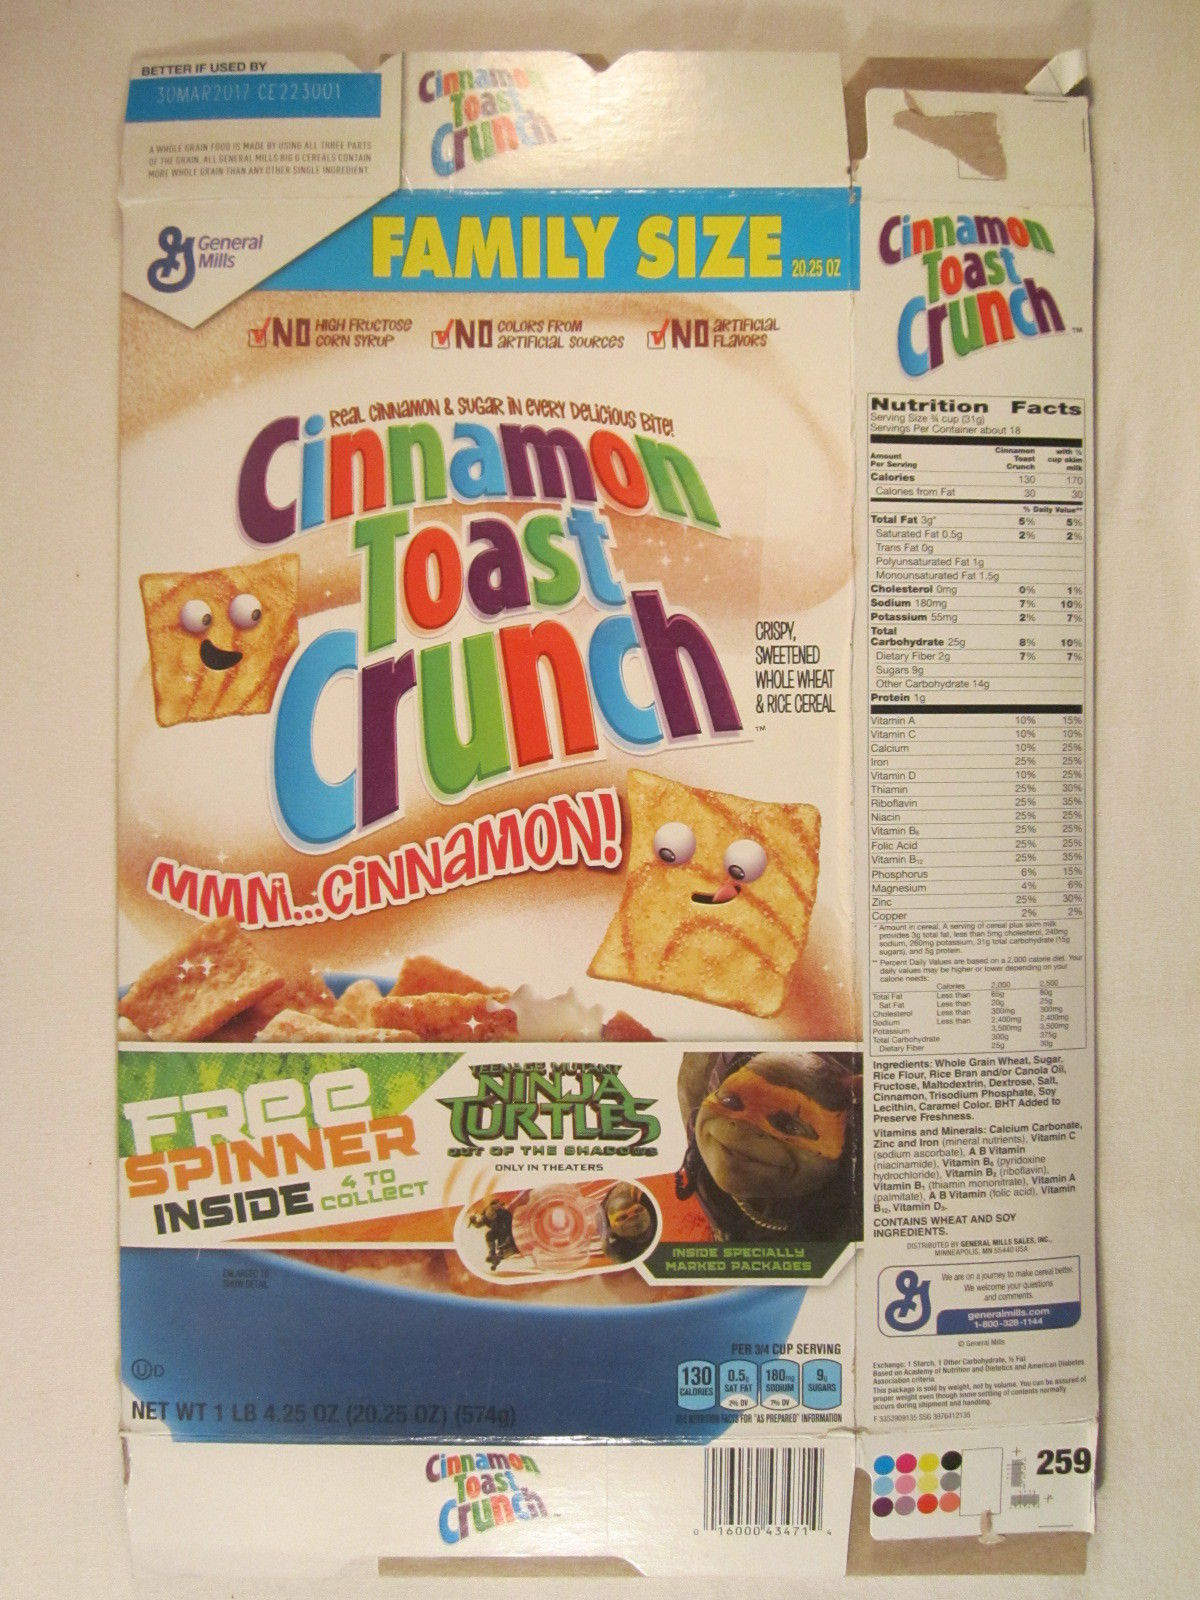 Primary image for MT Cereal Box CINNAMON TOAST CRUNCH 2016 20.25oz NINJA TURTLES [G7D5e]